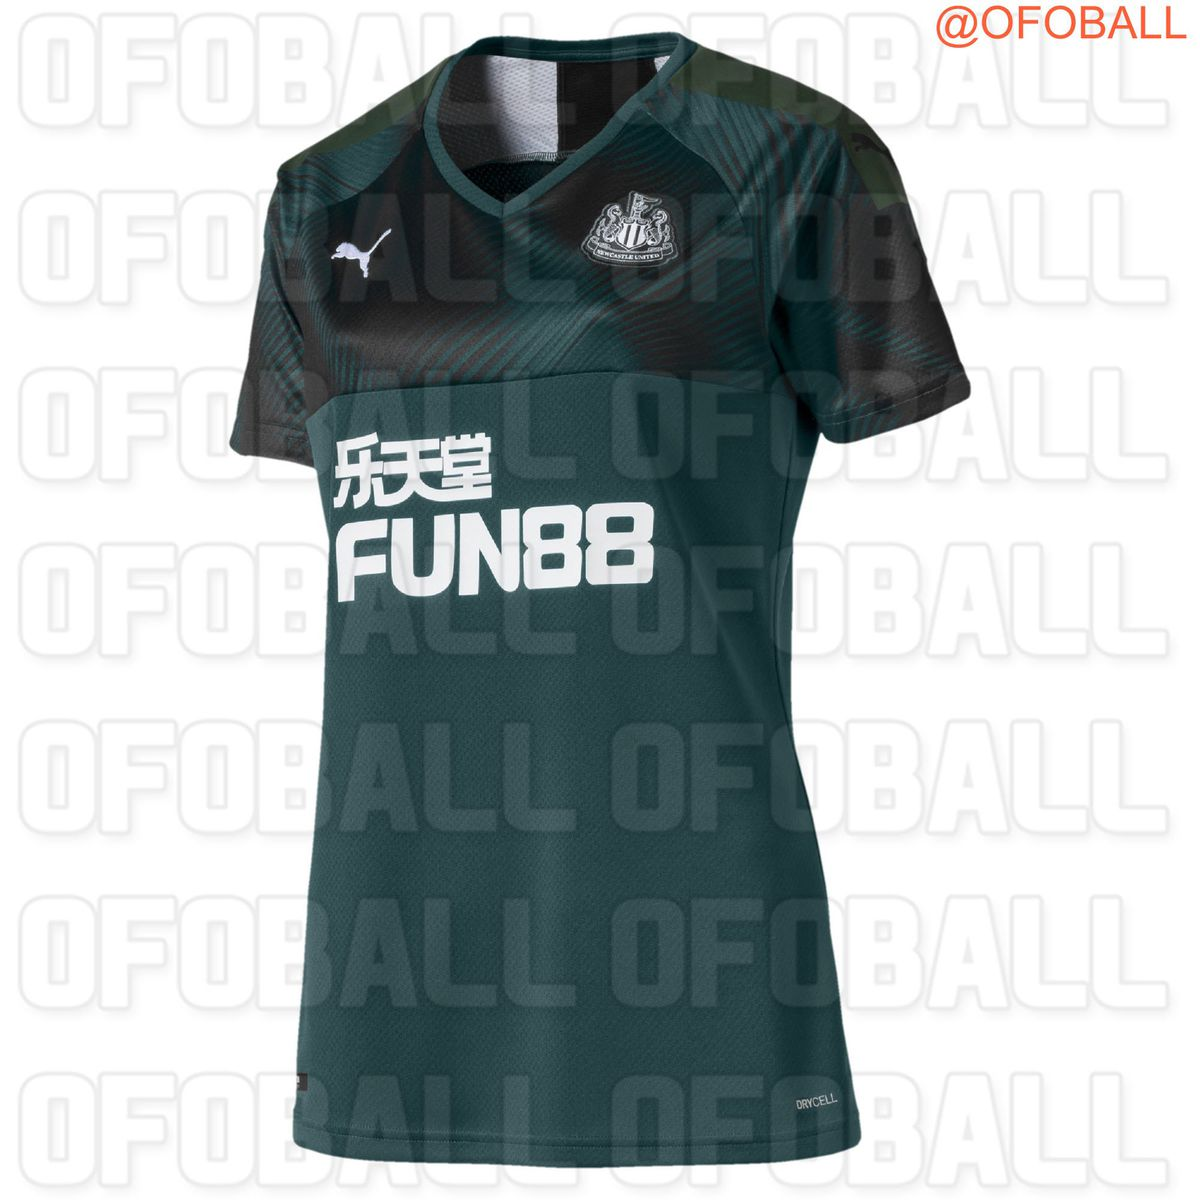 73b1599a8 Report: Newcastle 2019-2020 Jerseys Leaked - Coming Home Newcastle